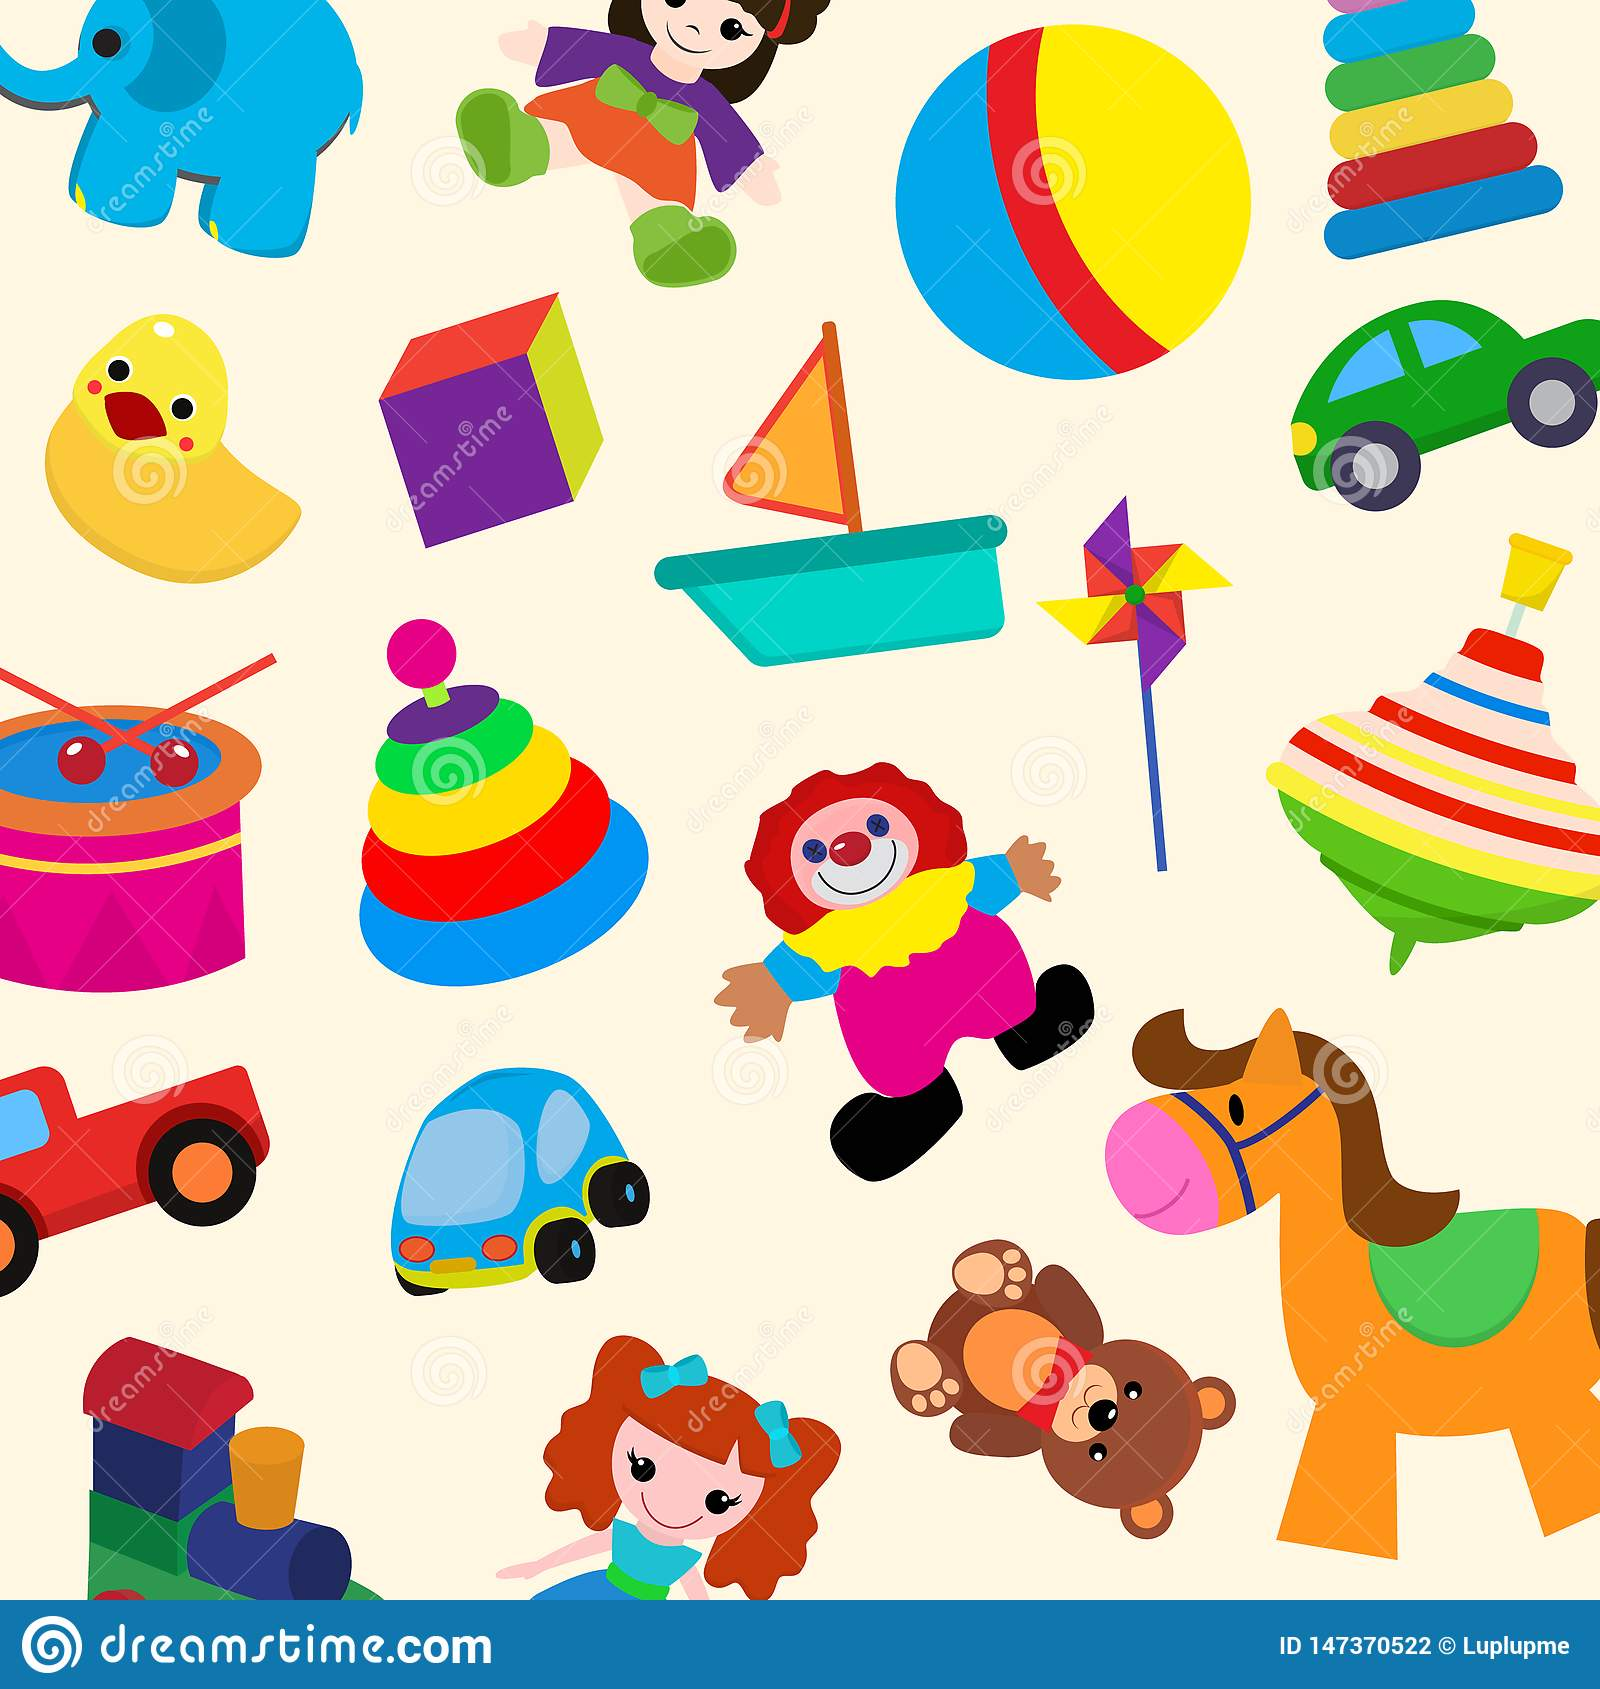 Colorful toys in cartoon style for kids seamless pattern vector illustration. Childish design with doll, duck, elephant